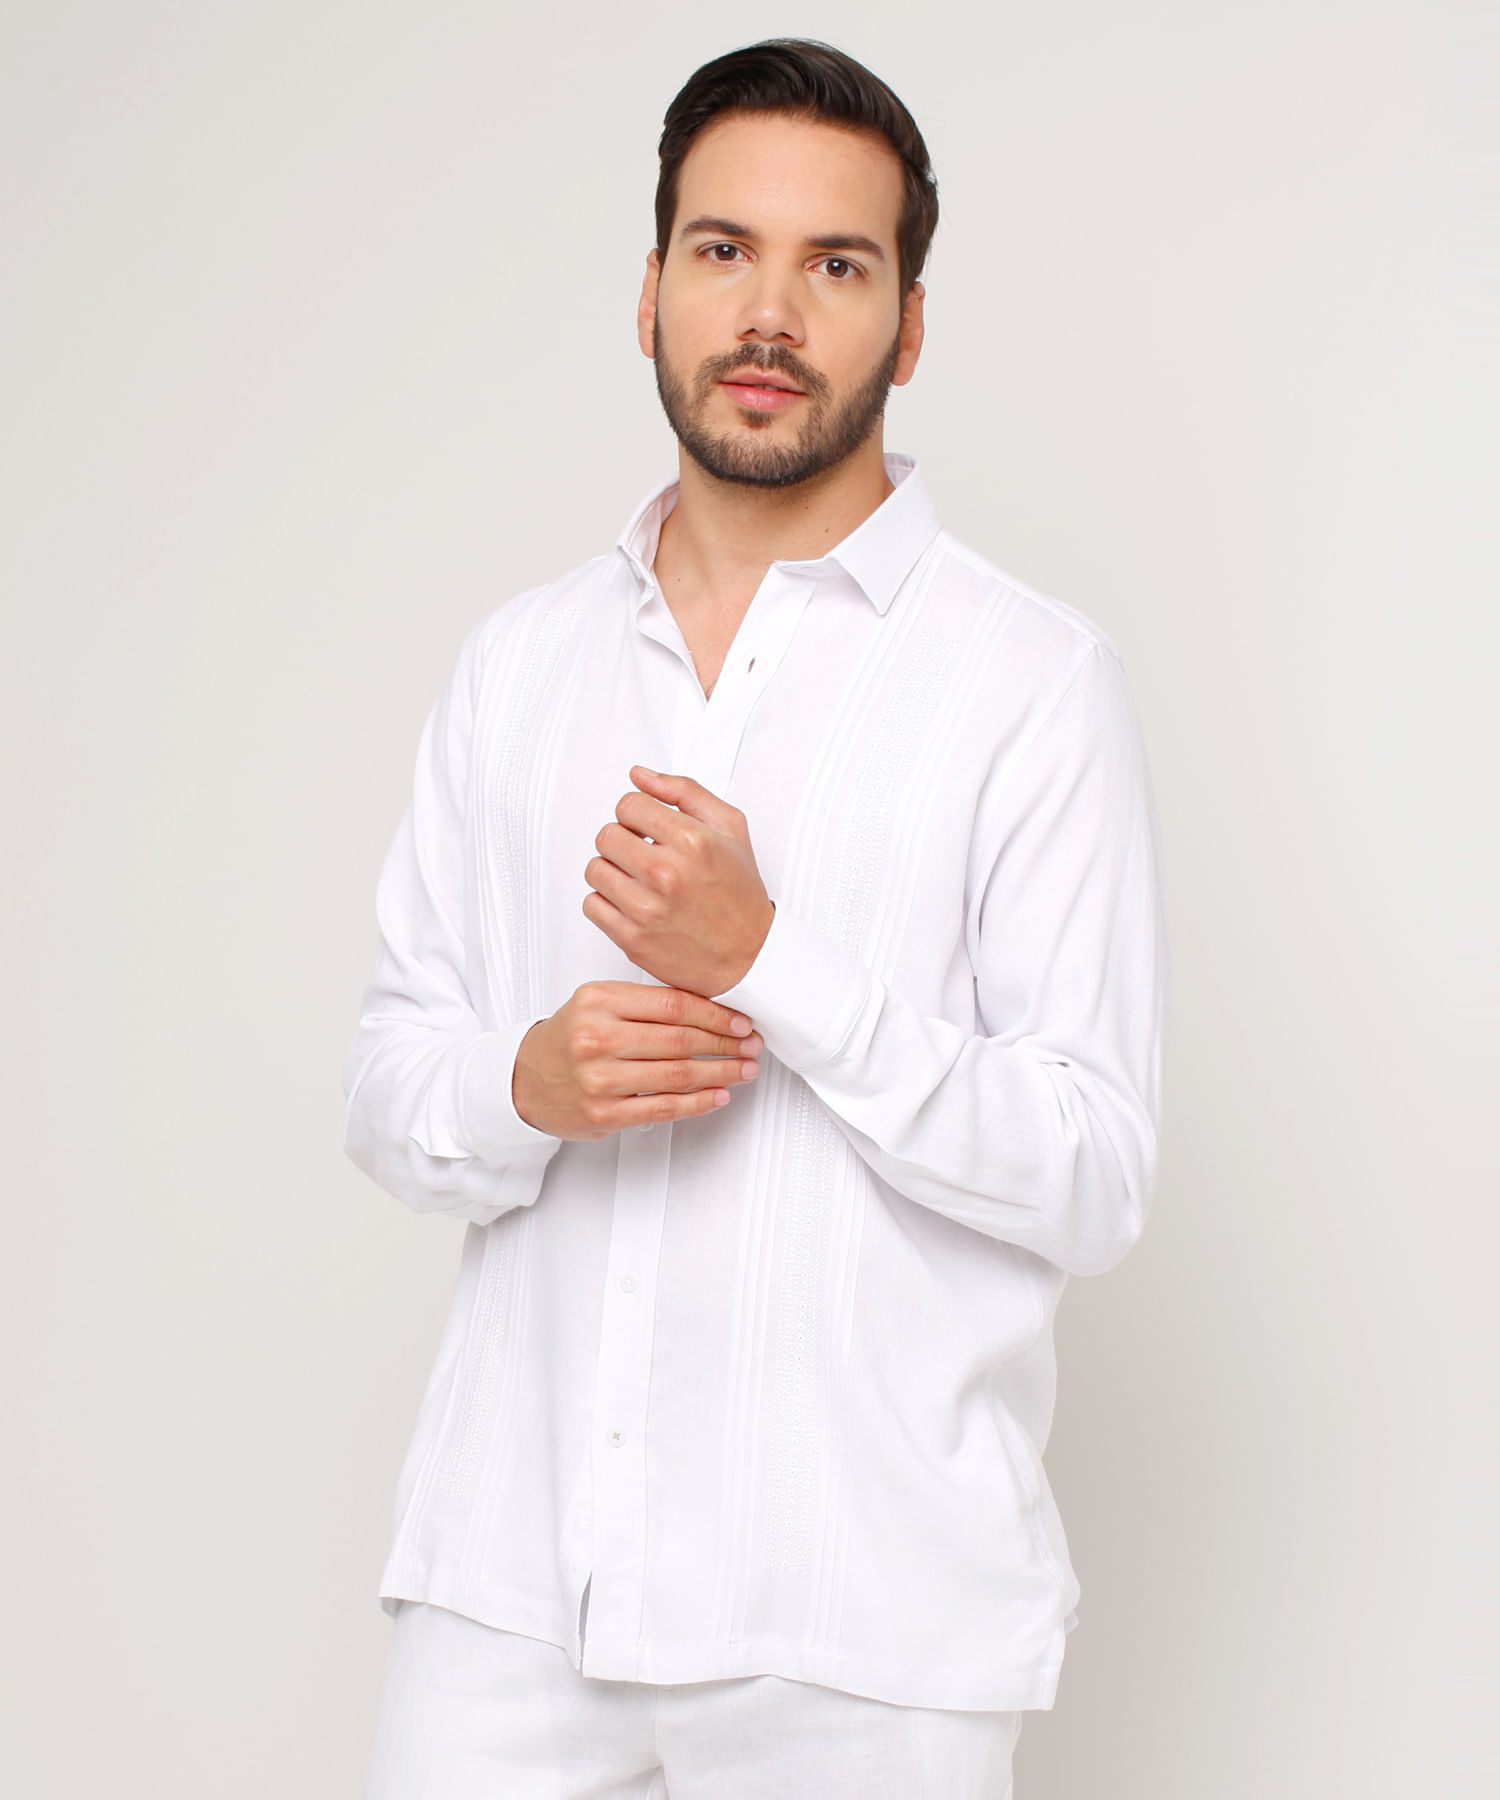 d903217d83 Guayabera Manga Larga Con Sutil Bordado En Color Blanco 44030263 - Patprimo